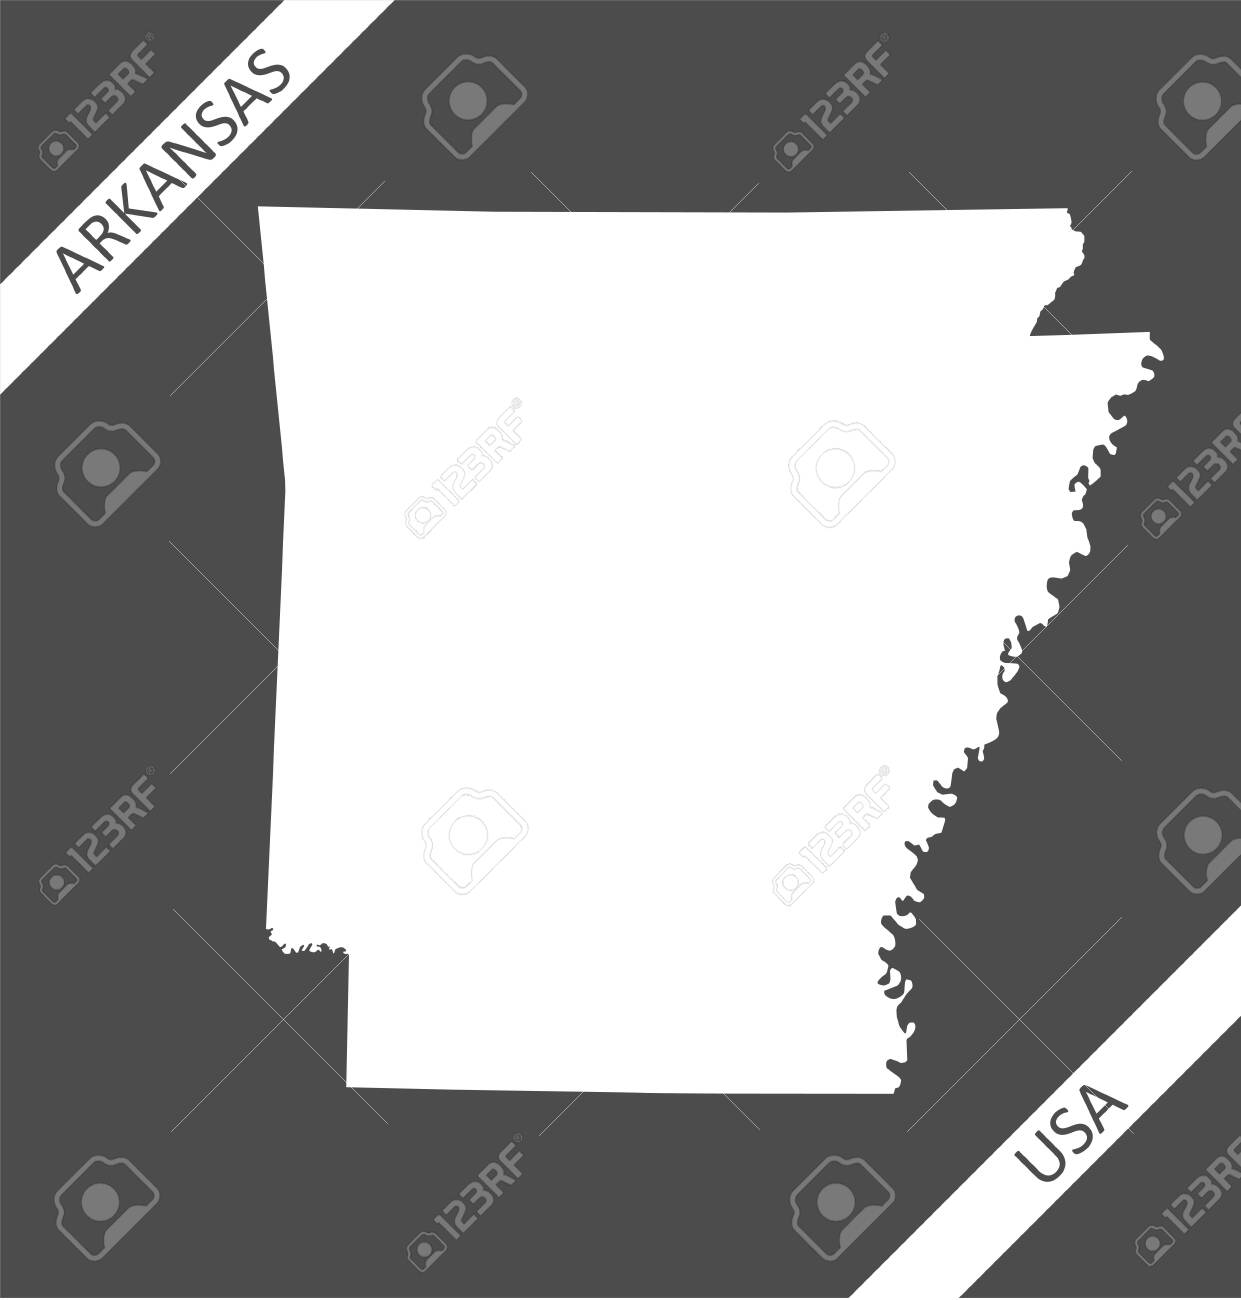 Image of: Blank Map Of Arkansas Usa Royalty Free Cliparts Vectors And Stock Illustration Image 151774146